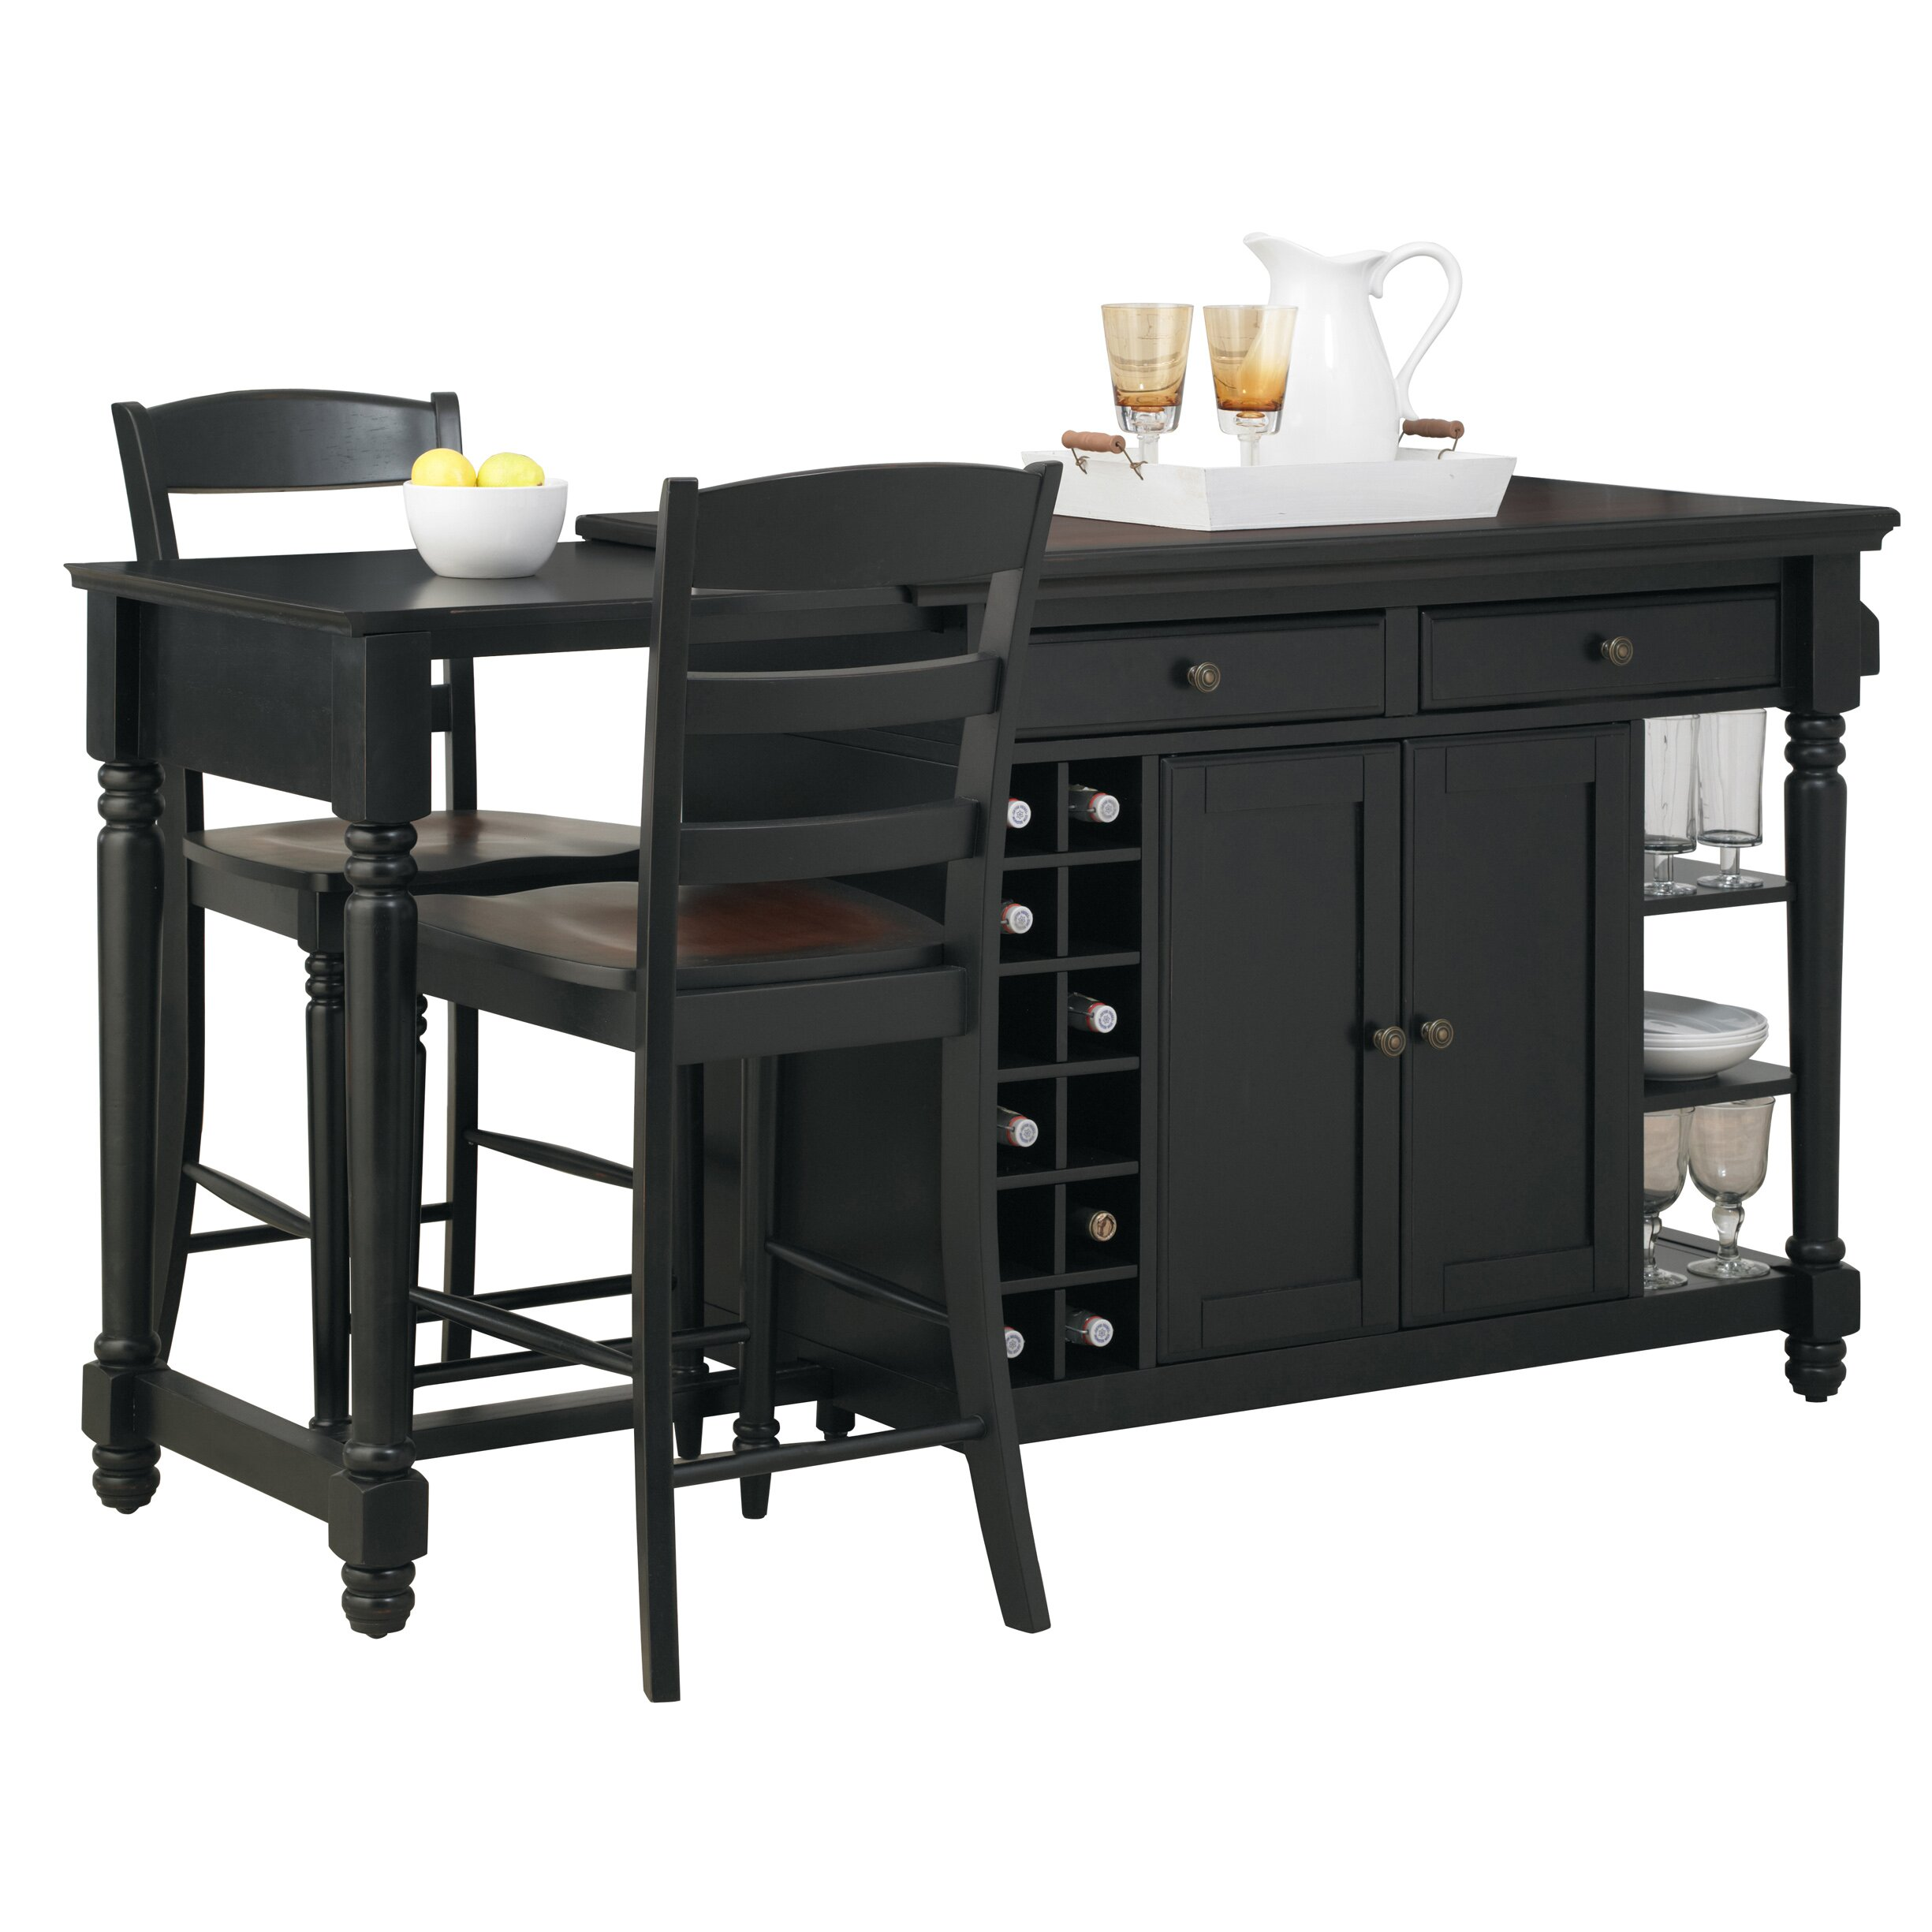 Cleanhill Kitchen Island